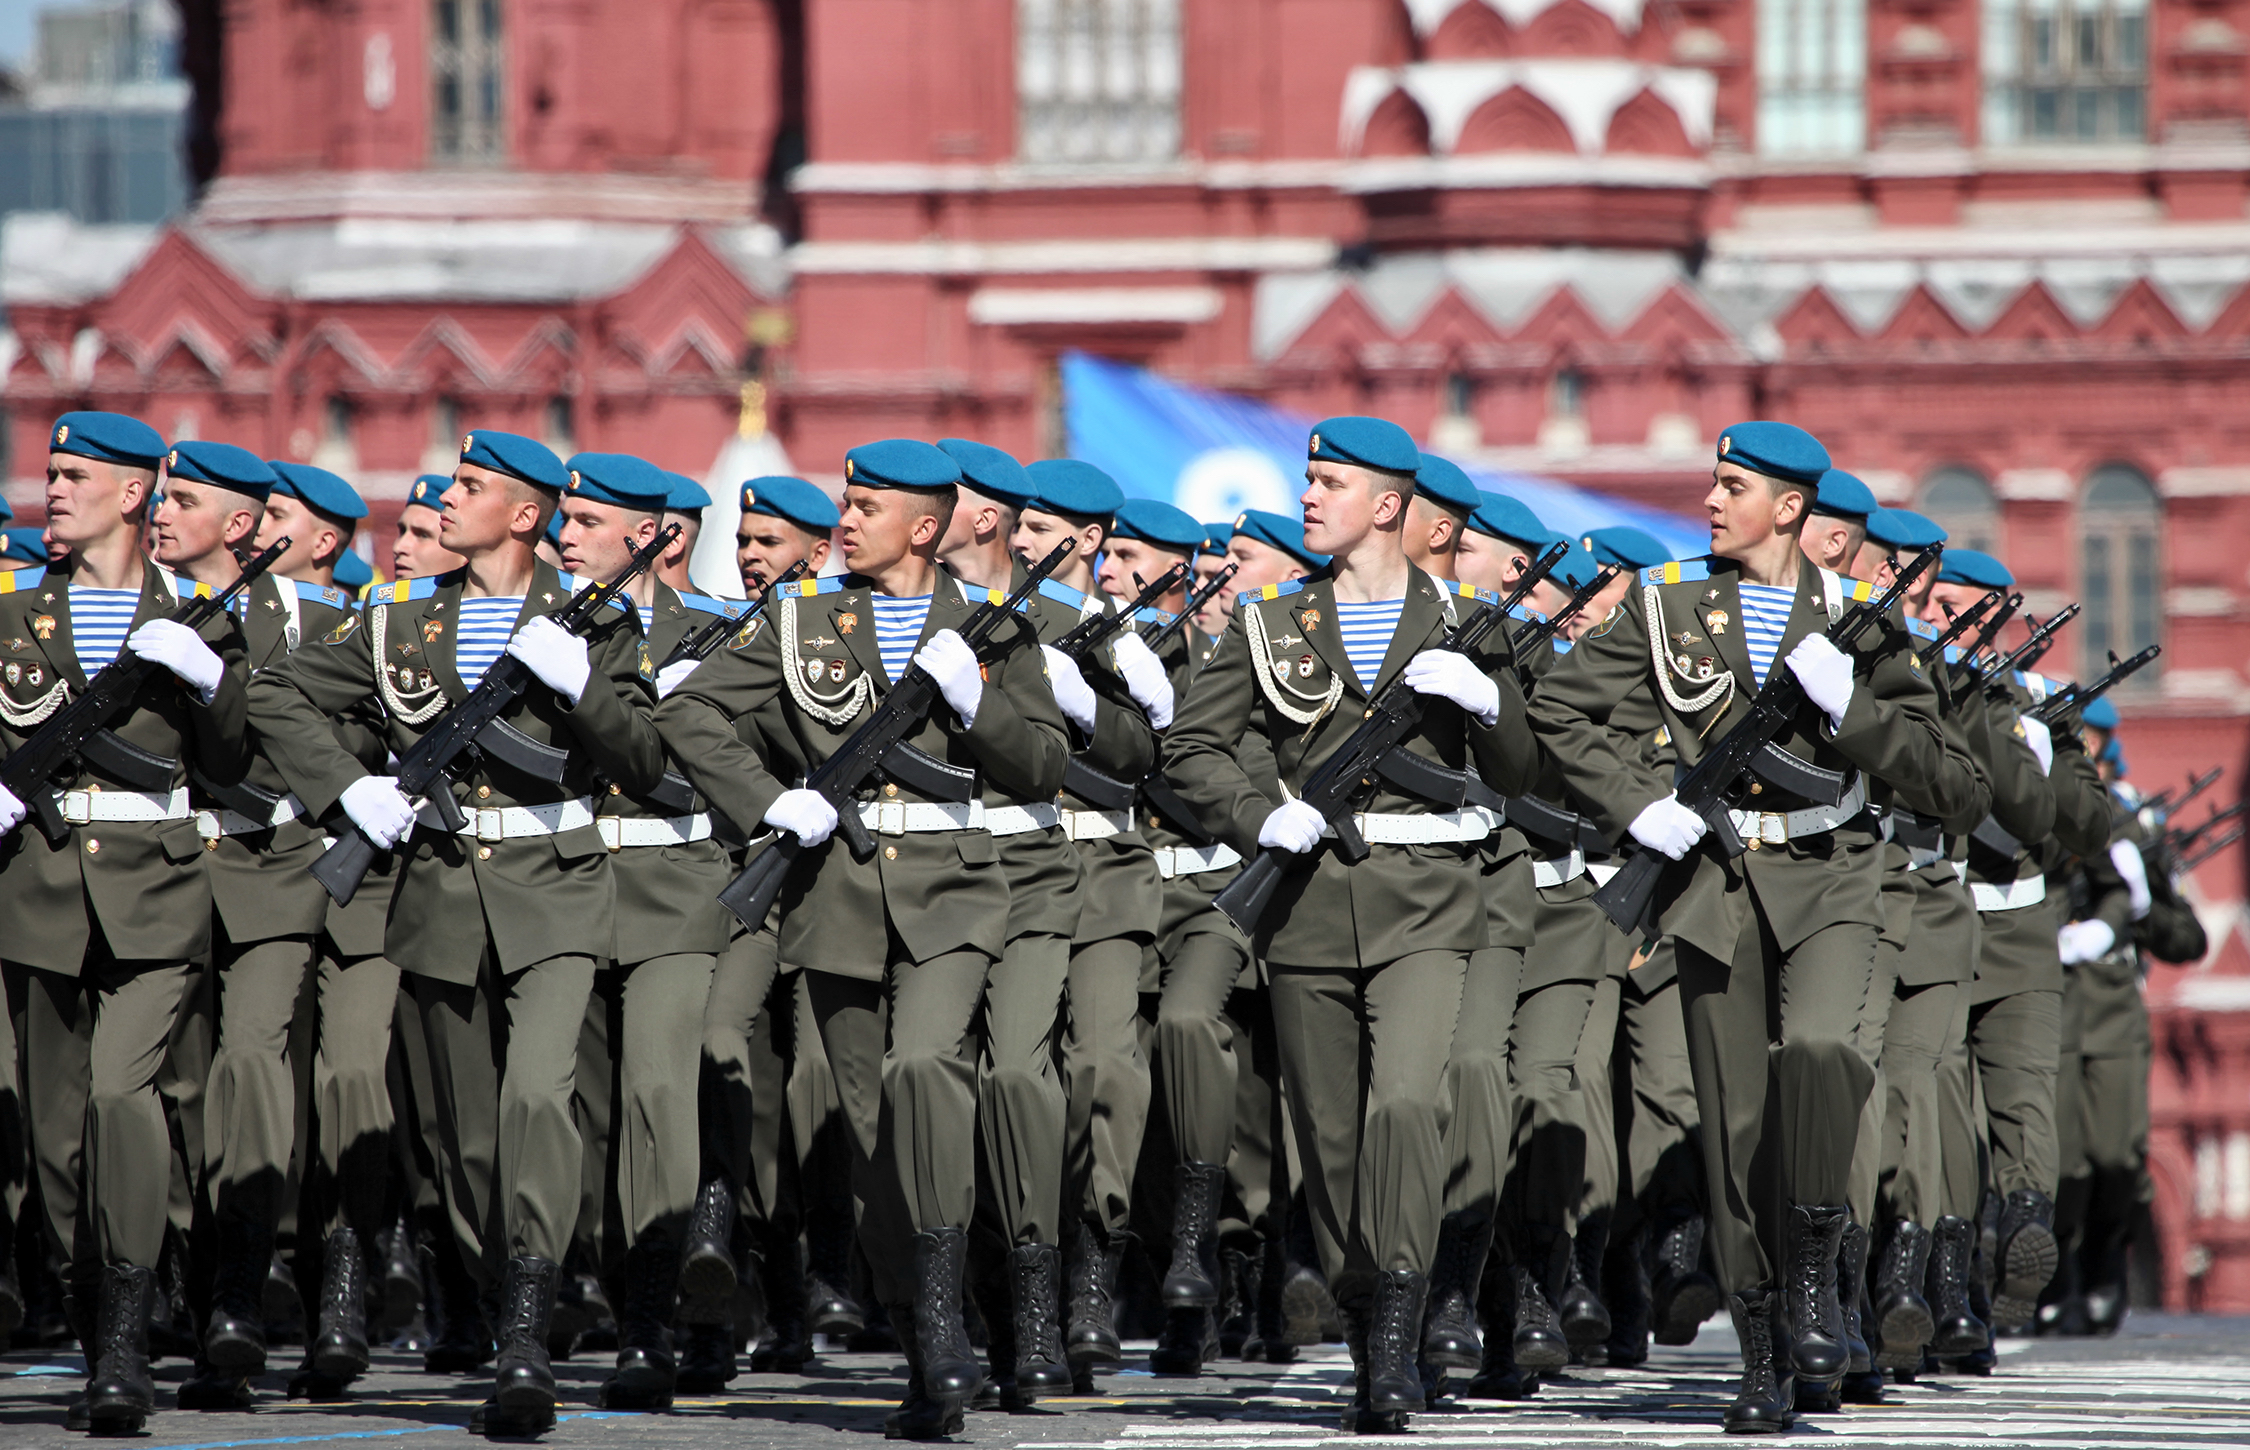 Russian airborne soldiers march in Moscow in 2013. photo by Vitaly V. Kuzmin